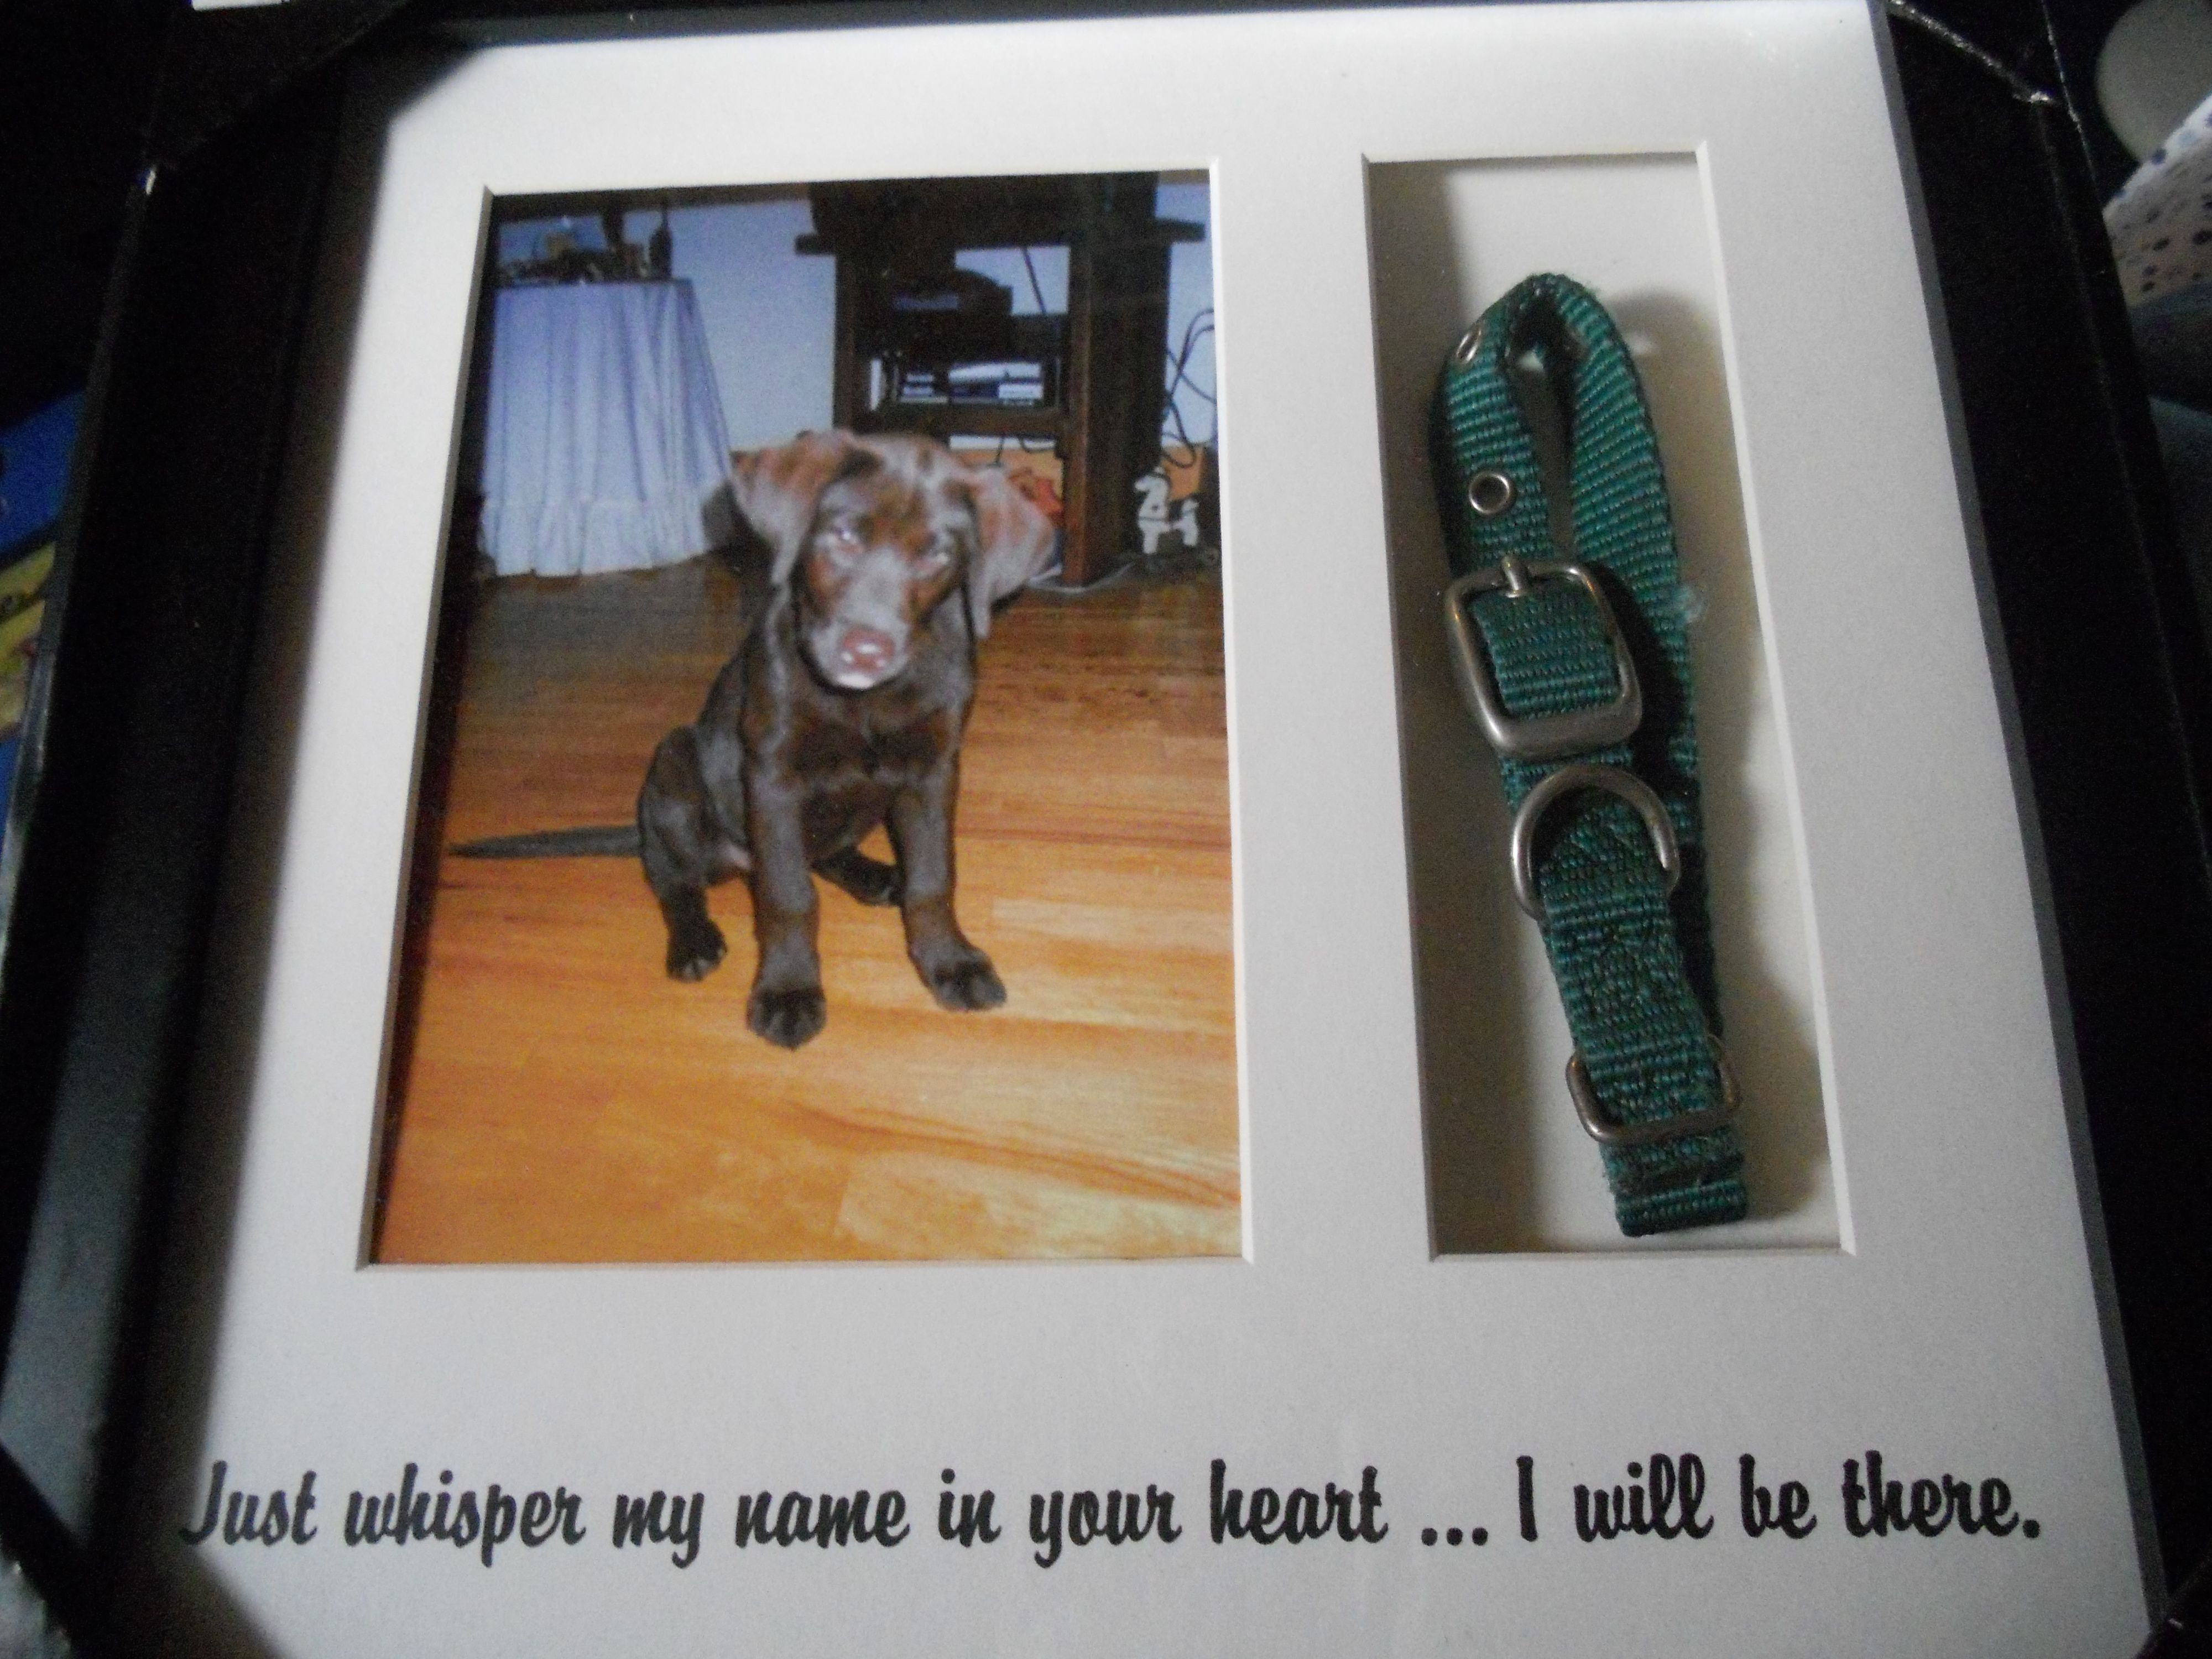 One of the best Christmas gifts I have ever received in memory of my baby <3